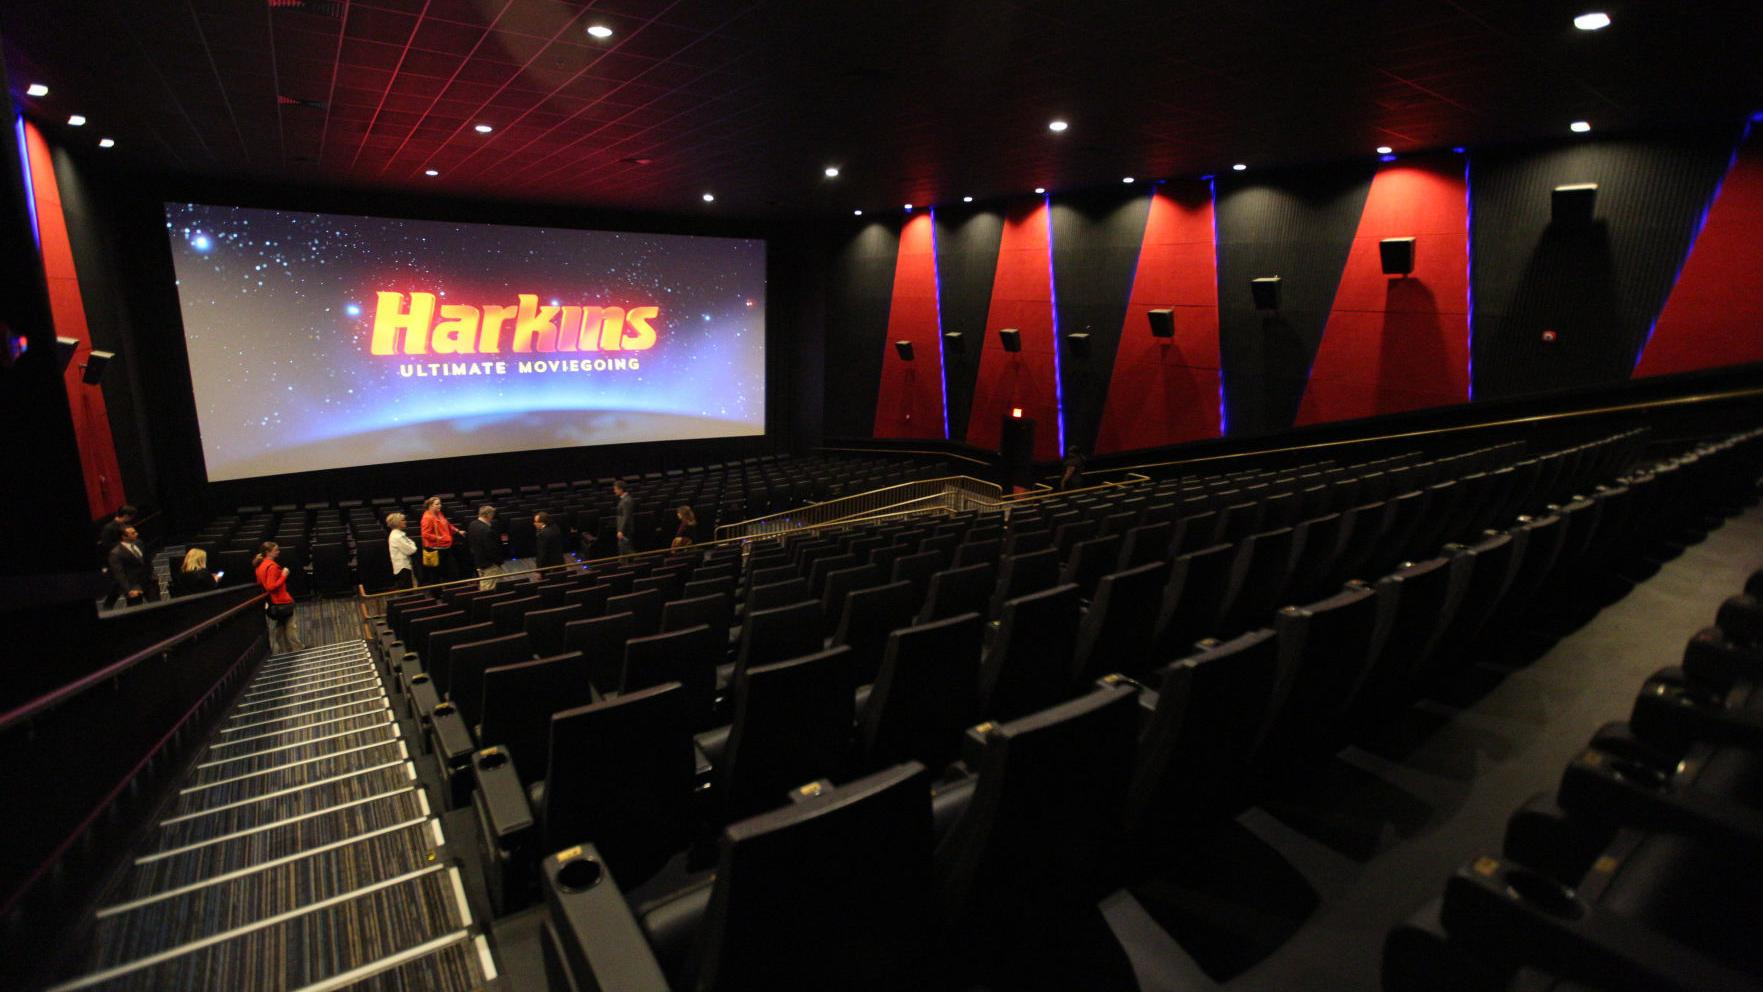 harkins flagstaff 16 a sneak peek news azdailysuncom